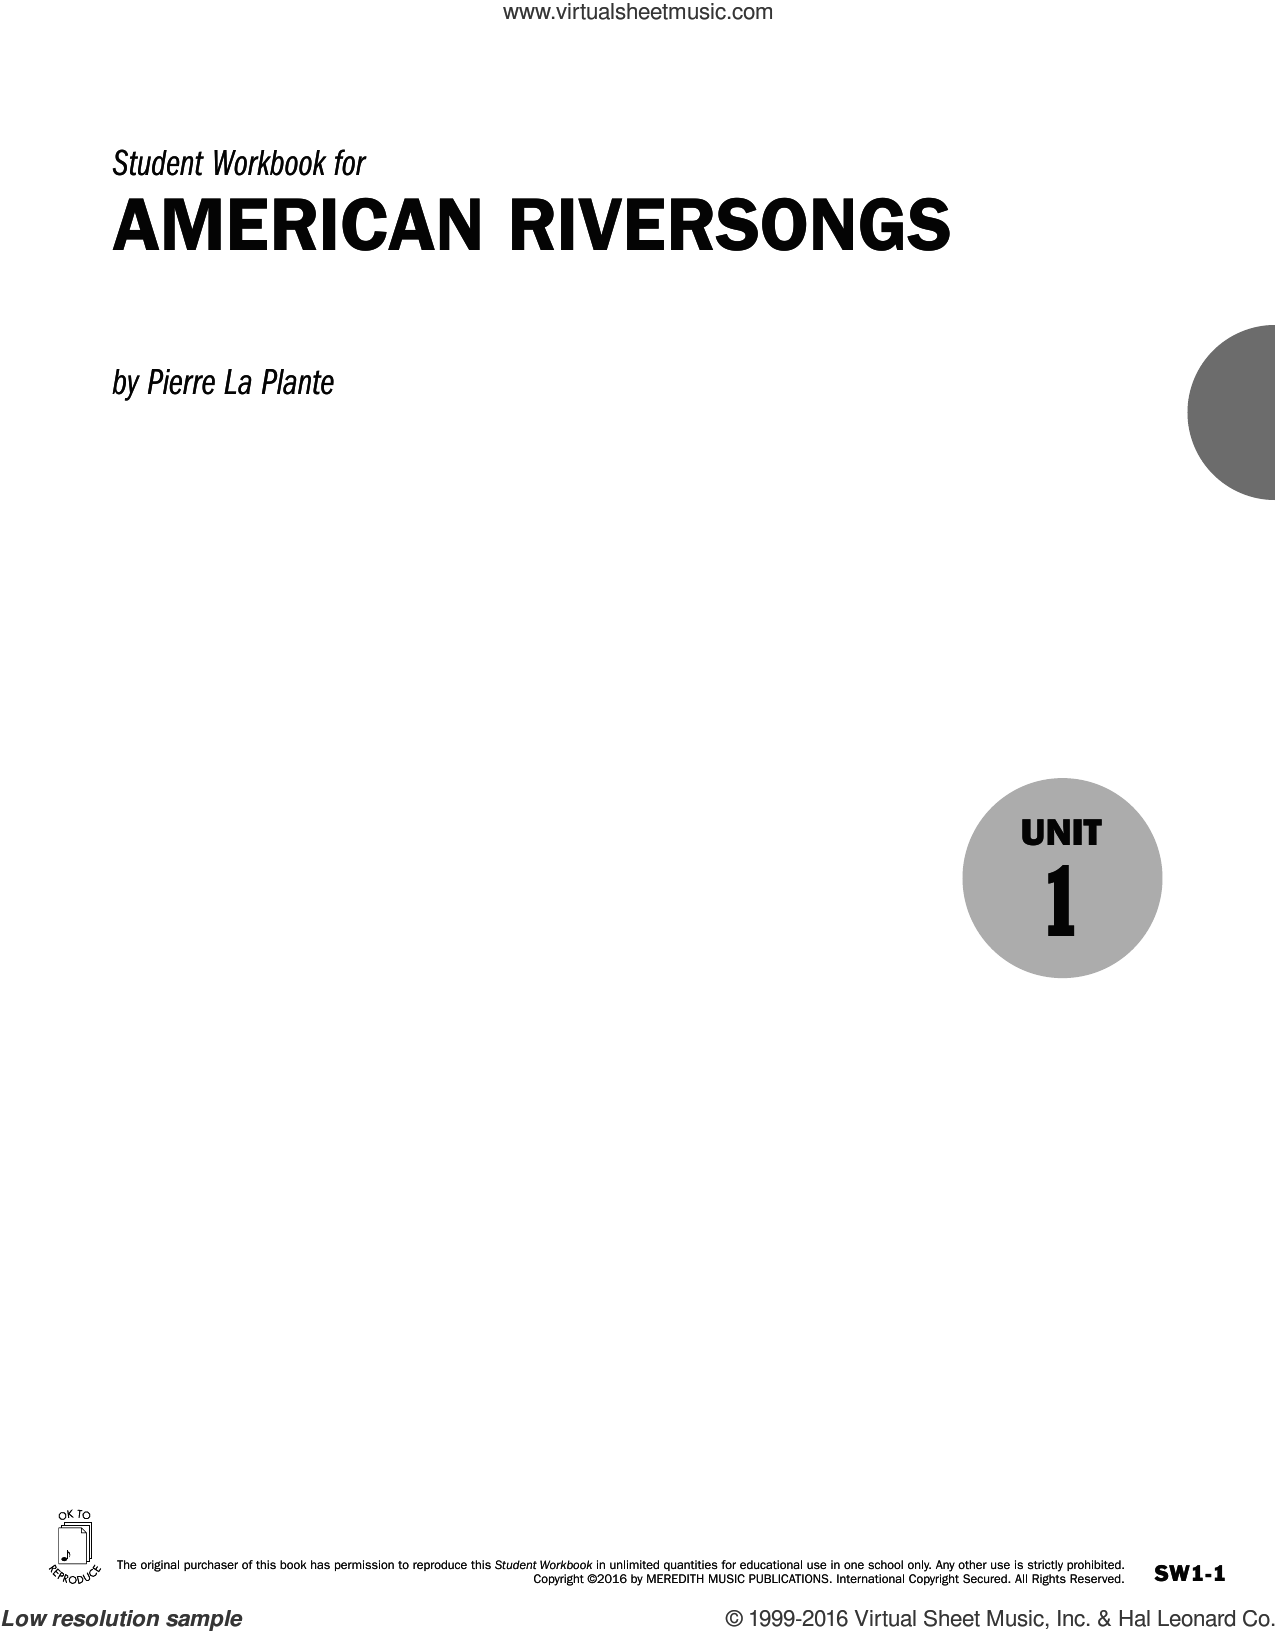 Guides to Band Masterworks, Vol. 6 - Student Workbook - American Riversongs sheet music for for flute or other instruments by Pierre La Plante. Score Image Preview.